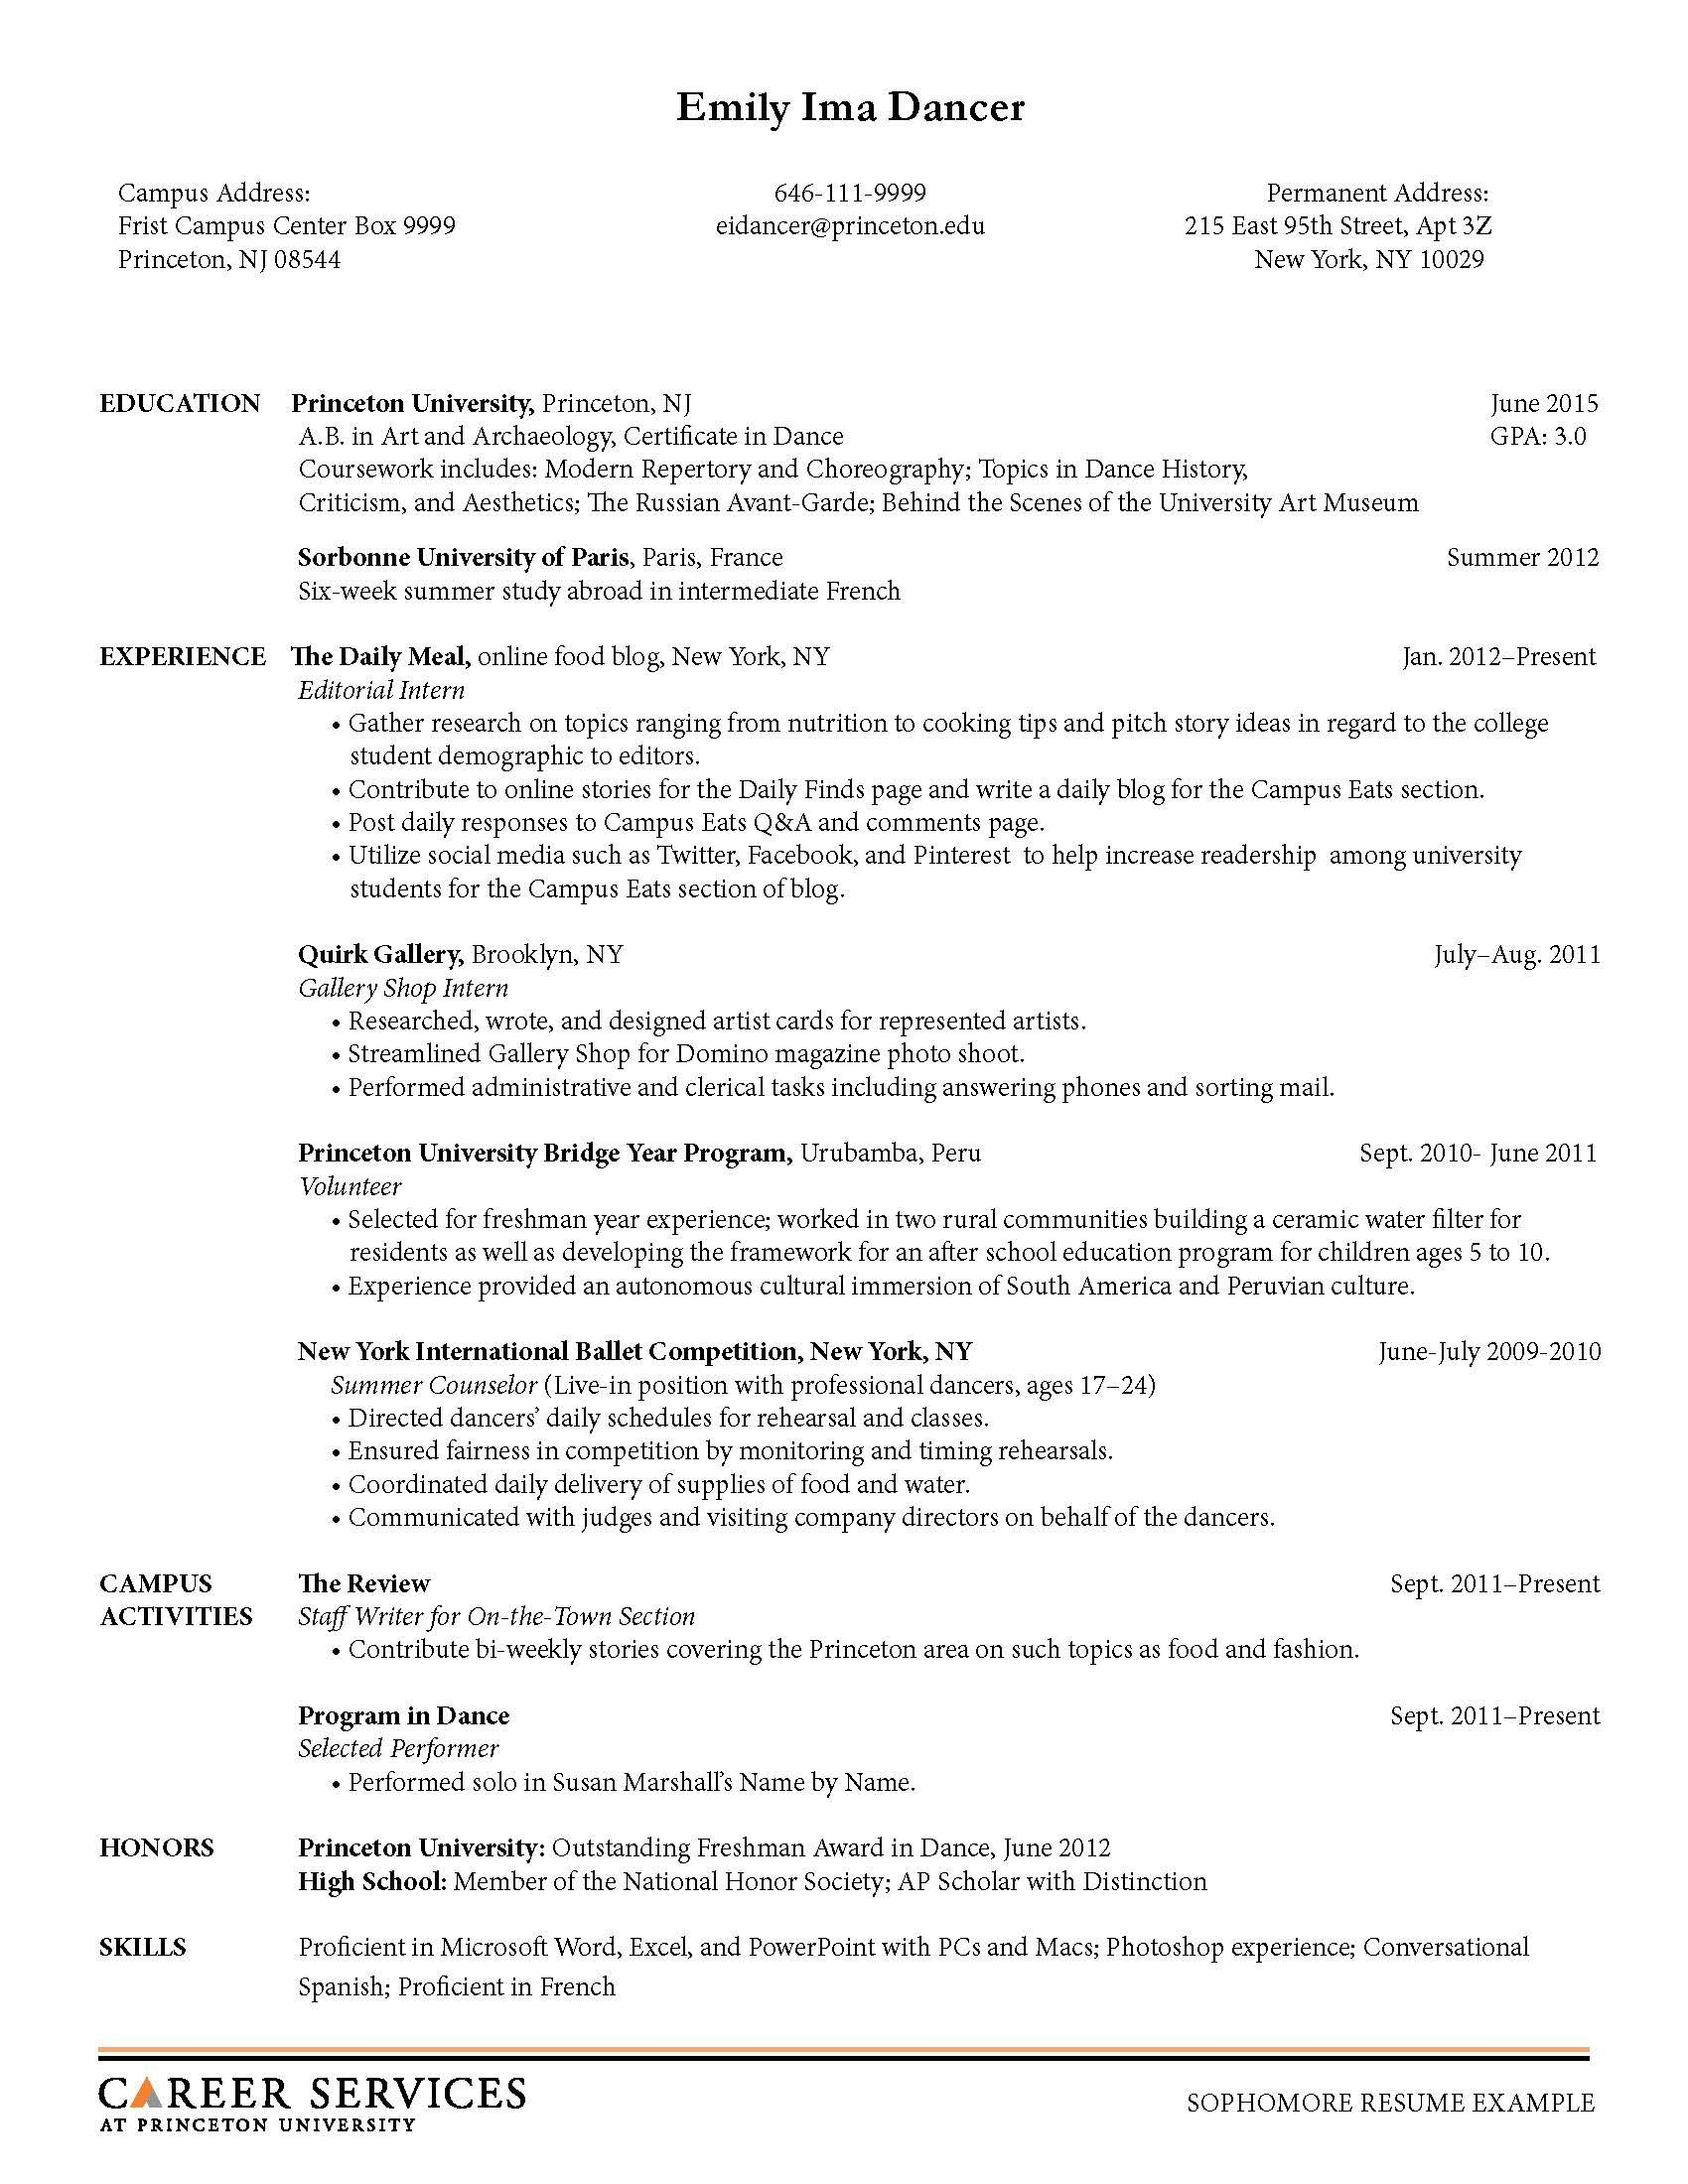 Opposenewapstandardsus  Seductive Sample Resume Resume And Career On Pinterest With Likable Senior Graphic Designer Resume Besides Perfect Resume Objective Furthermore Cashier Job Resume With Astounding Top Resume Builder Also Resume For Welder In Addition Teacher Objective Resume And Product Manager Resume Examples As Well As Resumes By Design Additionally Resume Sample Skills From Pinterestcom With Opposenewapstandardsus  Likable Sample Resume Resume And Career On Pinterest With Astounding Senior Graphic Designer Resume Besides Perfect Resume Objective Furthermore Cashier Job Resume And Seductive Top Resume Builder Also Resume For Welder In Addition Teacher Objective Resume From Pinterestcom